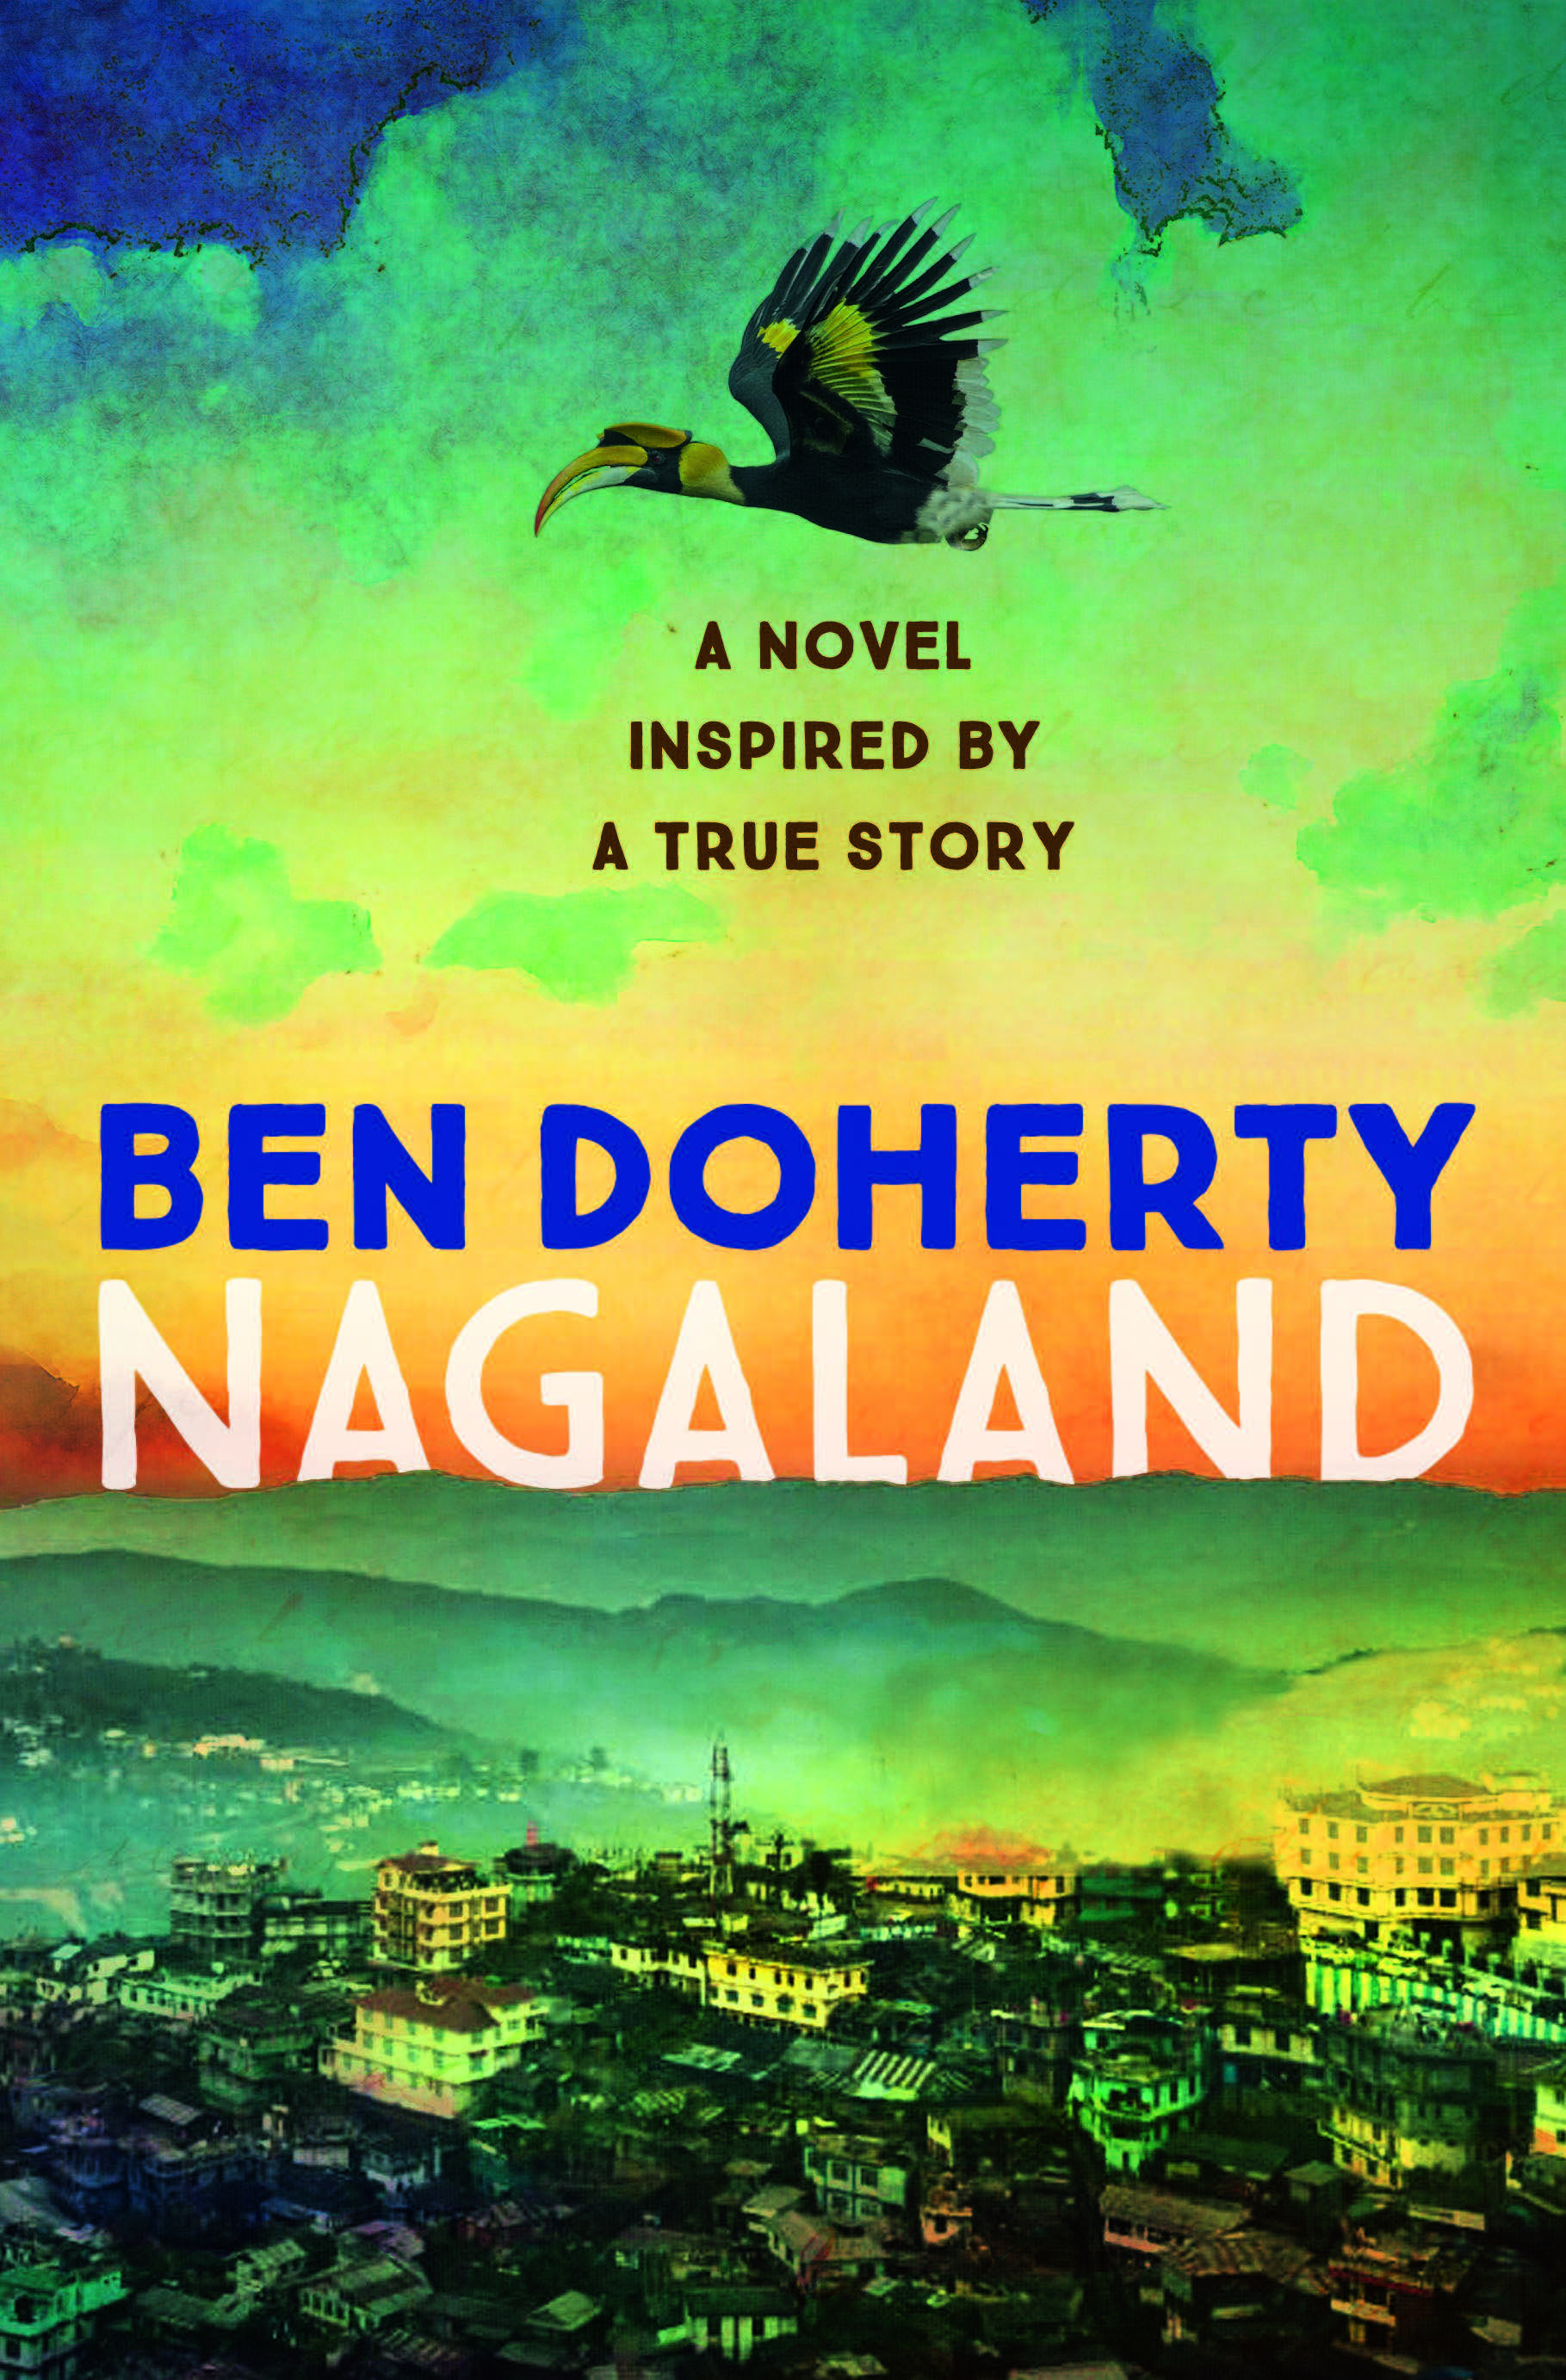 Nagaland_Cover_DB_18Jan18.jpg